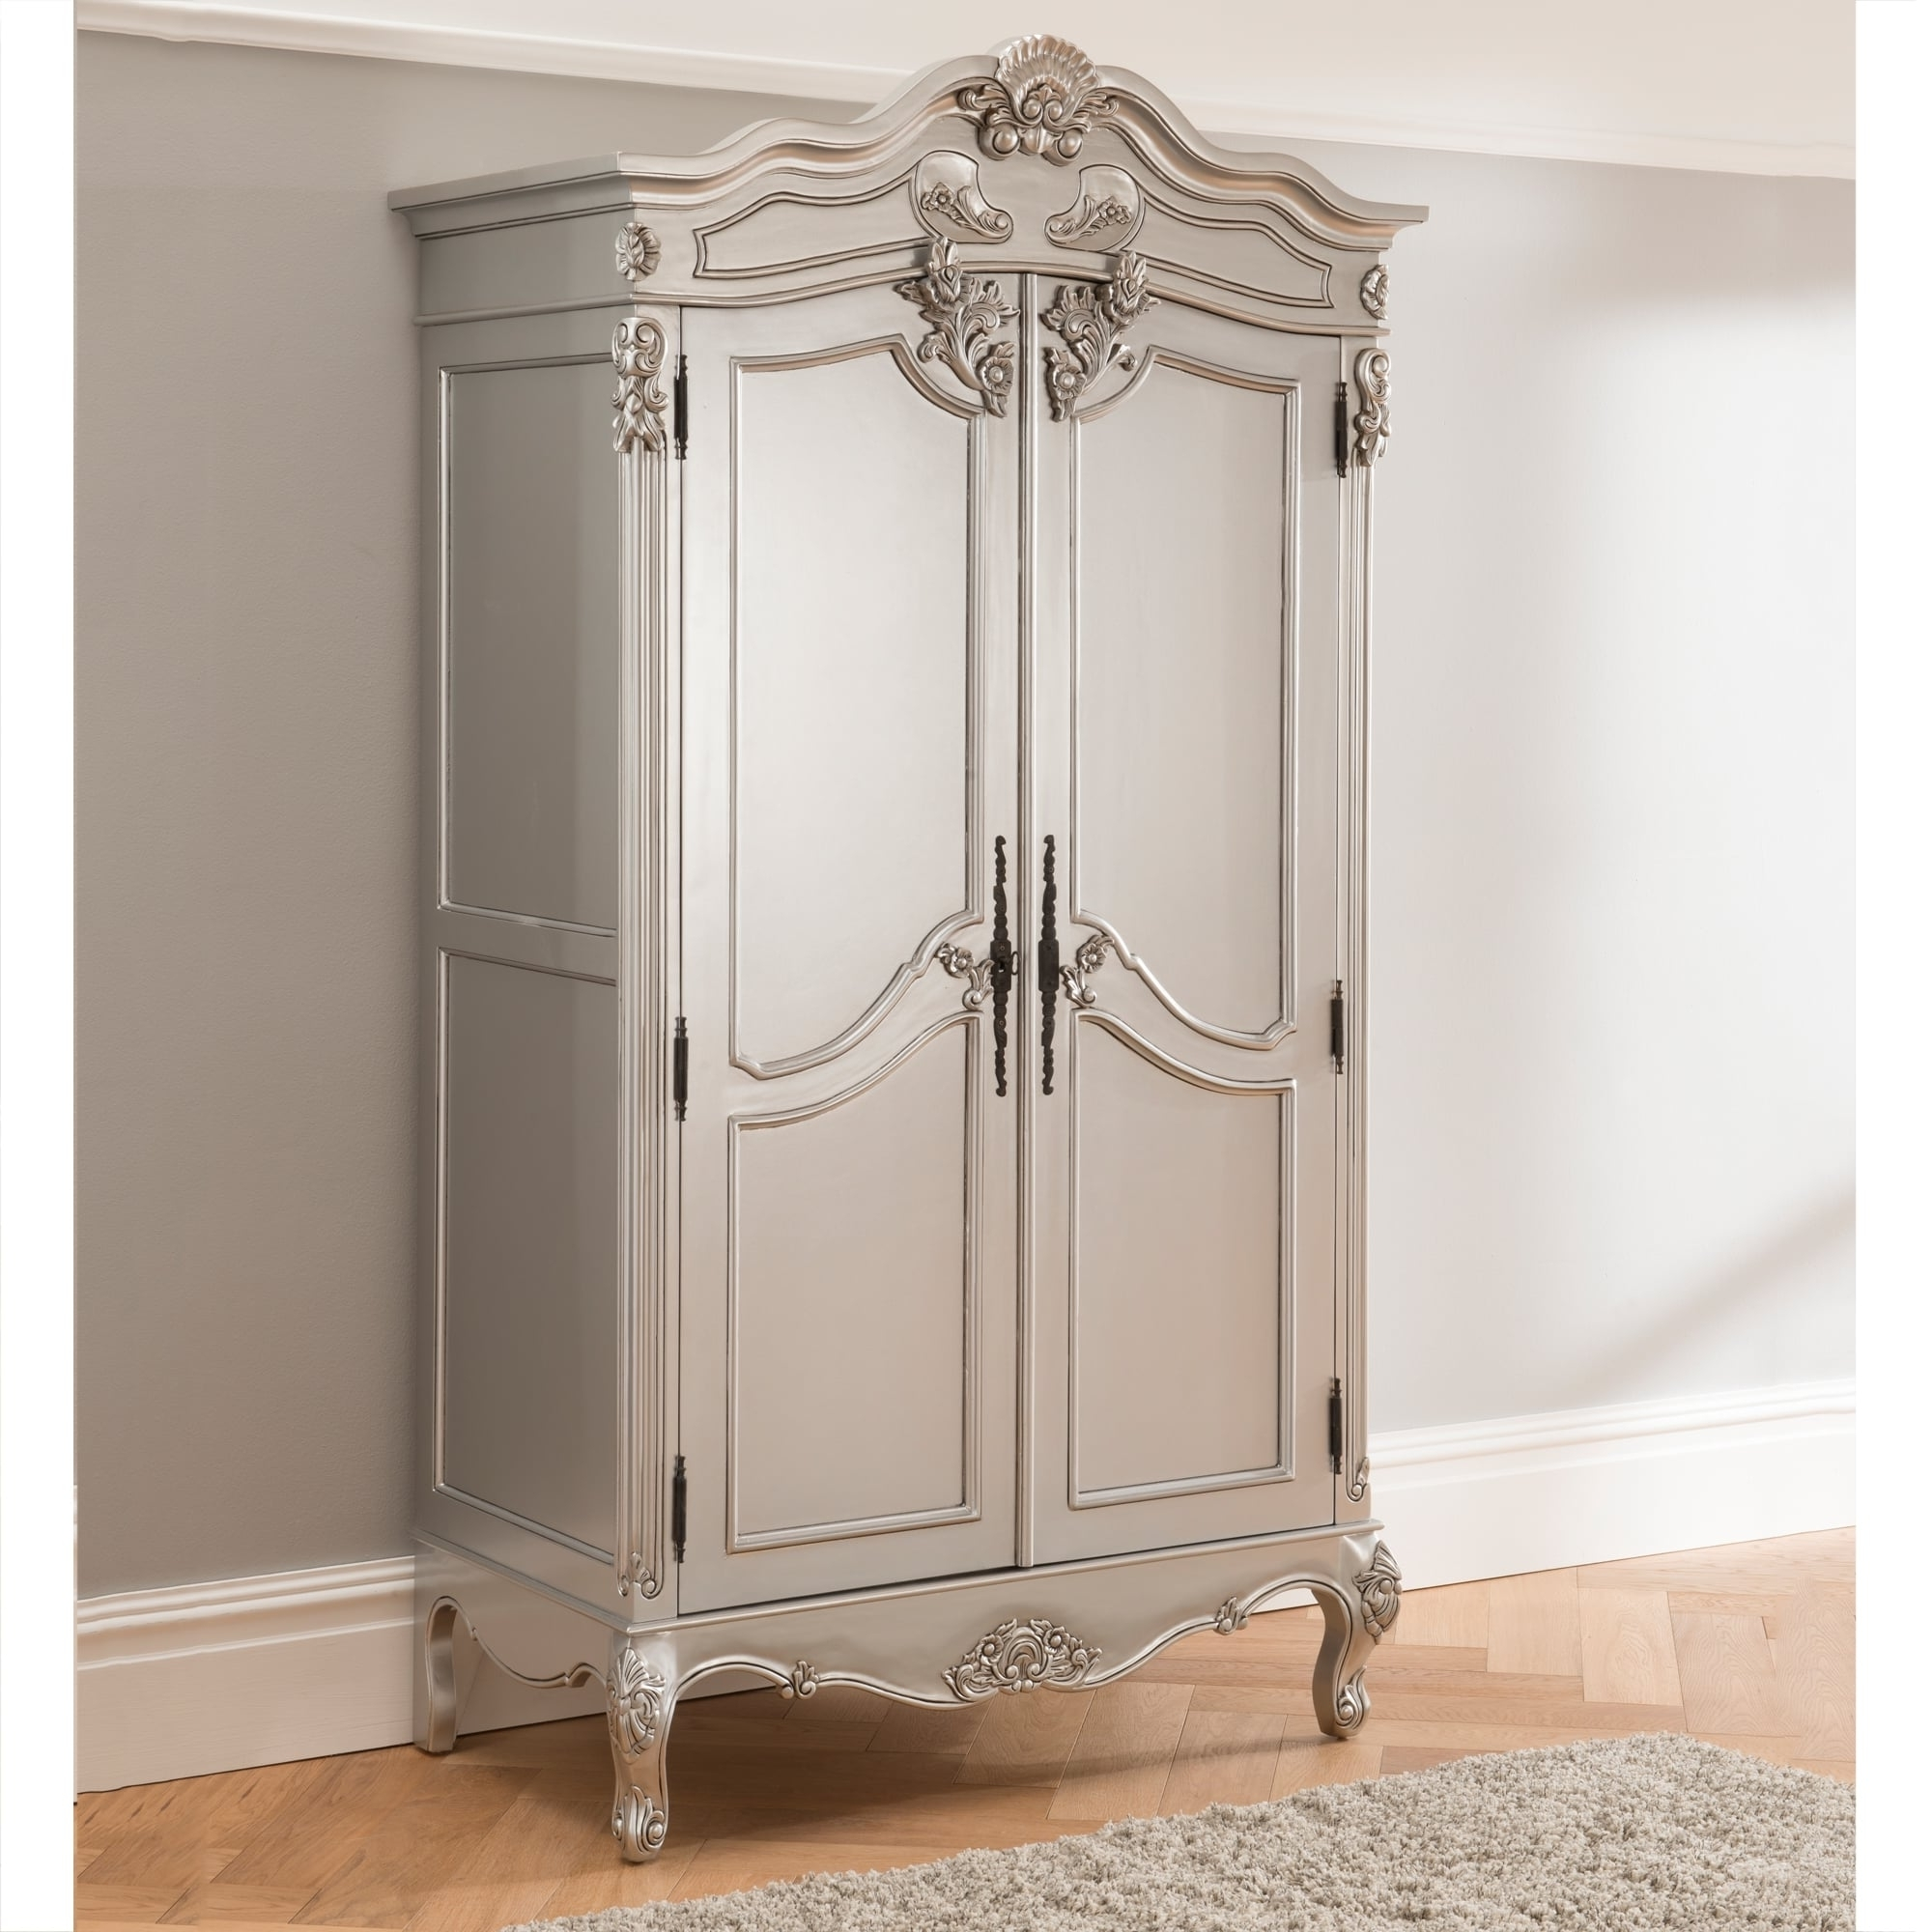 French Shabby Chic Wardrobes With Latest Baroque Antique French Wardrobe Works Exceptional Alongside Our (View 6 of 15)